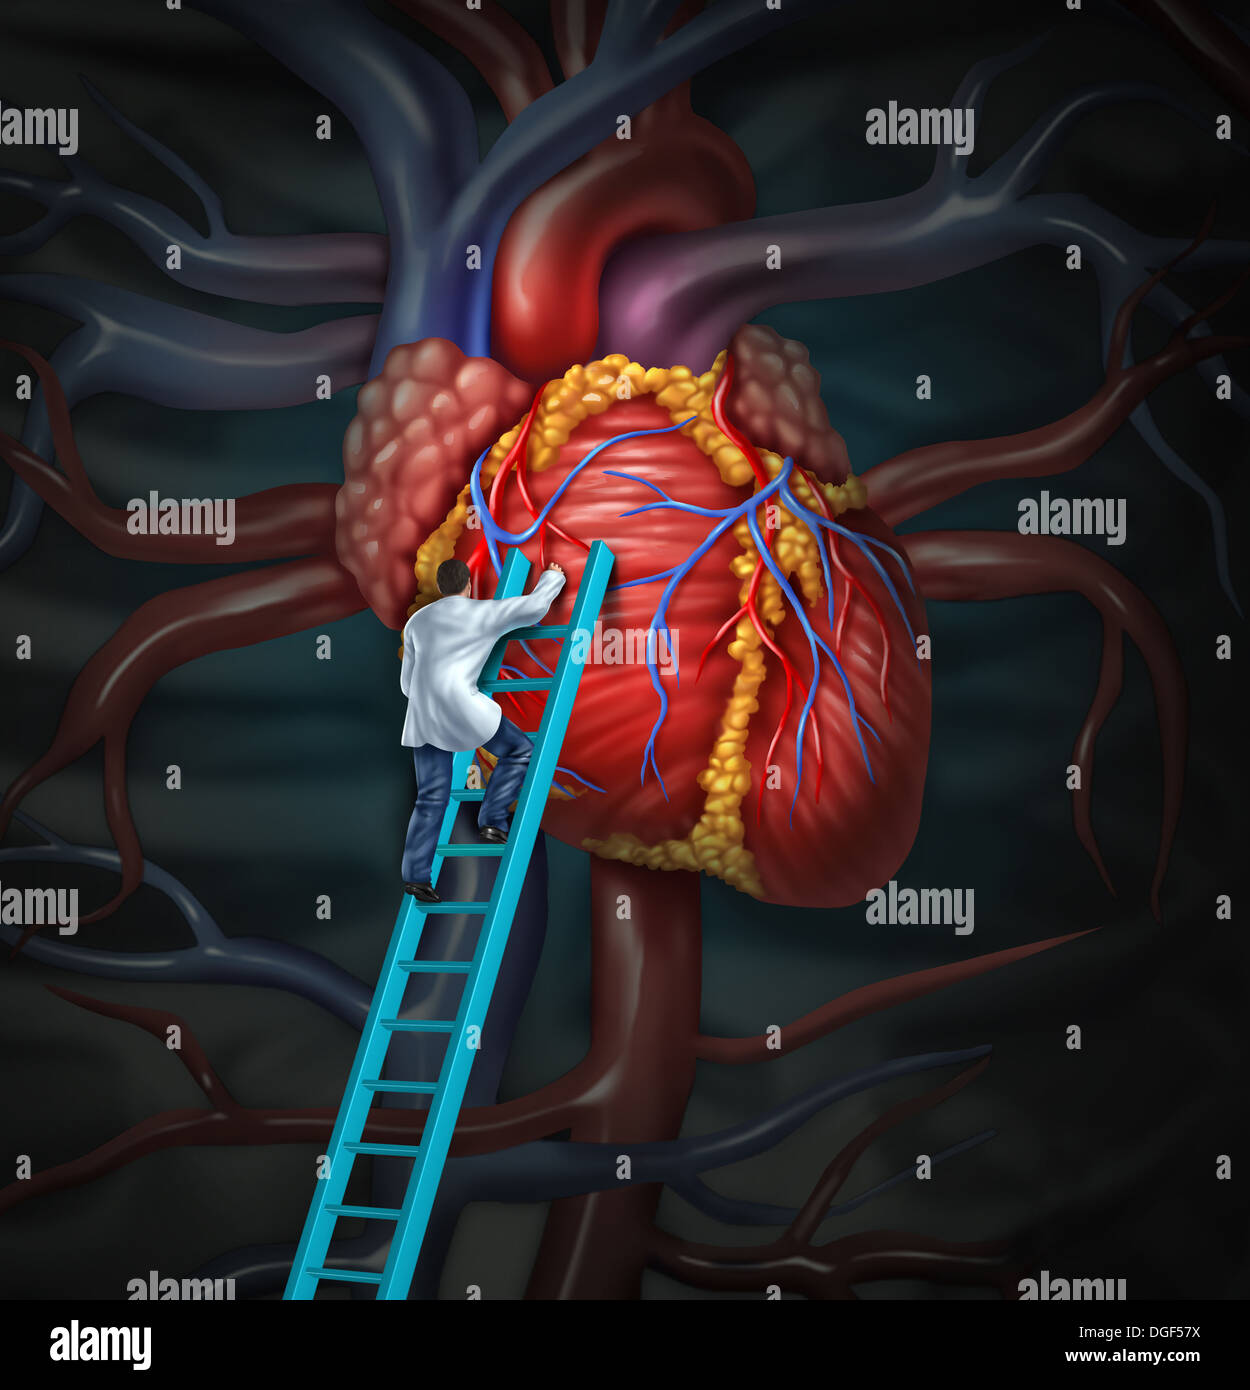 Heart doctor therapy health care and medical concept with a surgeon or cardiologist climbing a ladder to monitor and inspect the human cardiovascular anatomy for a hospital diagnosis treatment. - Stock Image